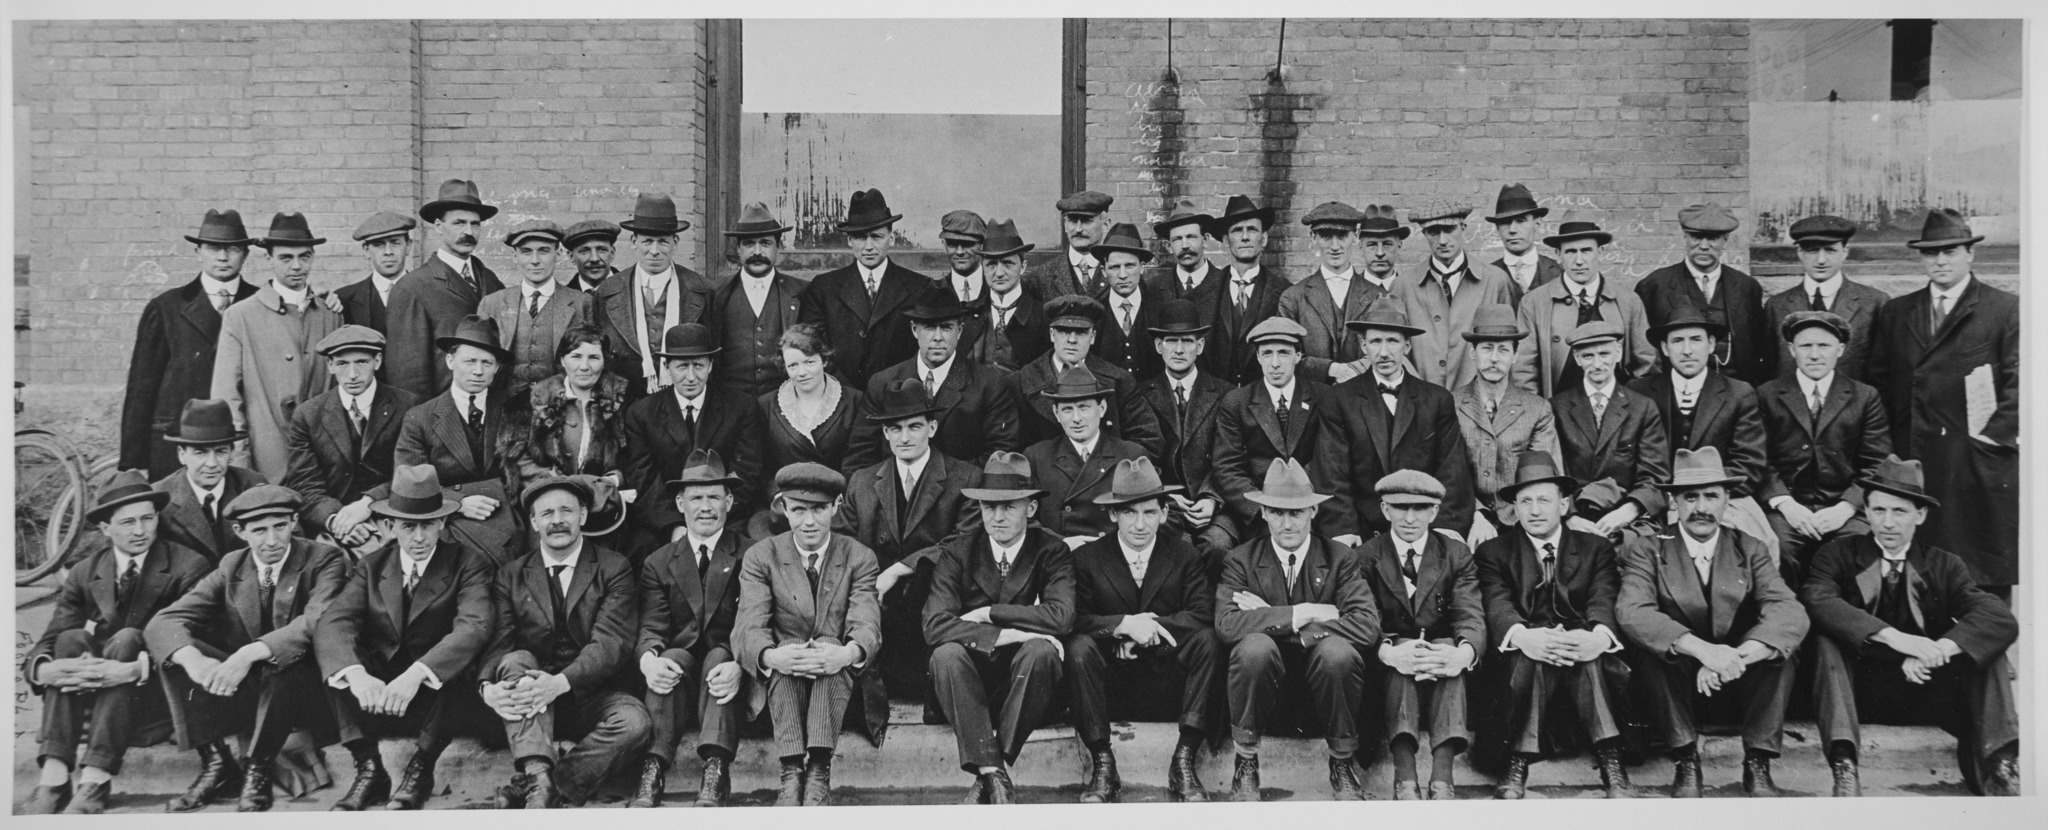 The Winnipeg Strike Committee consisted of representatives from the unions affiliated with the Winnipeg Trades and Labor Council.